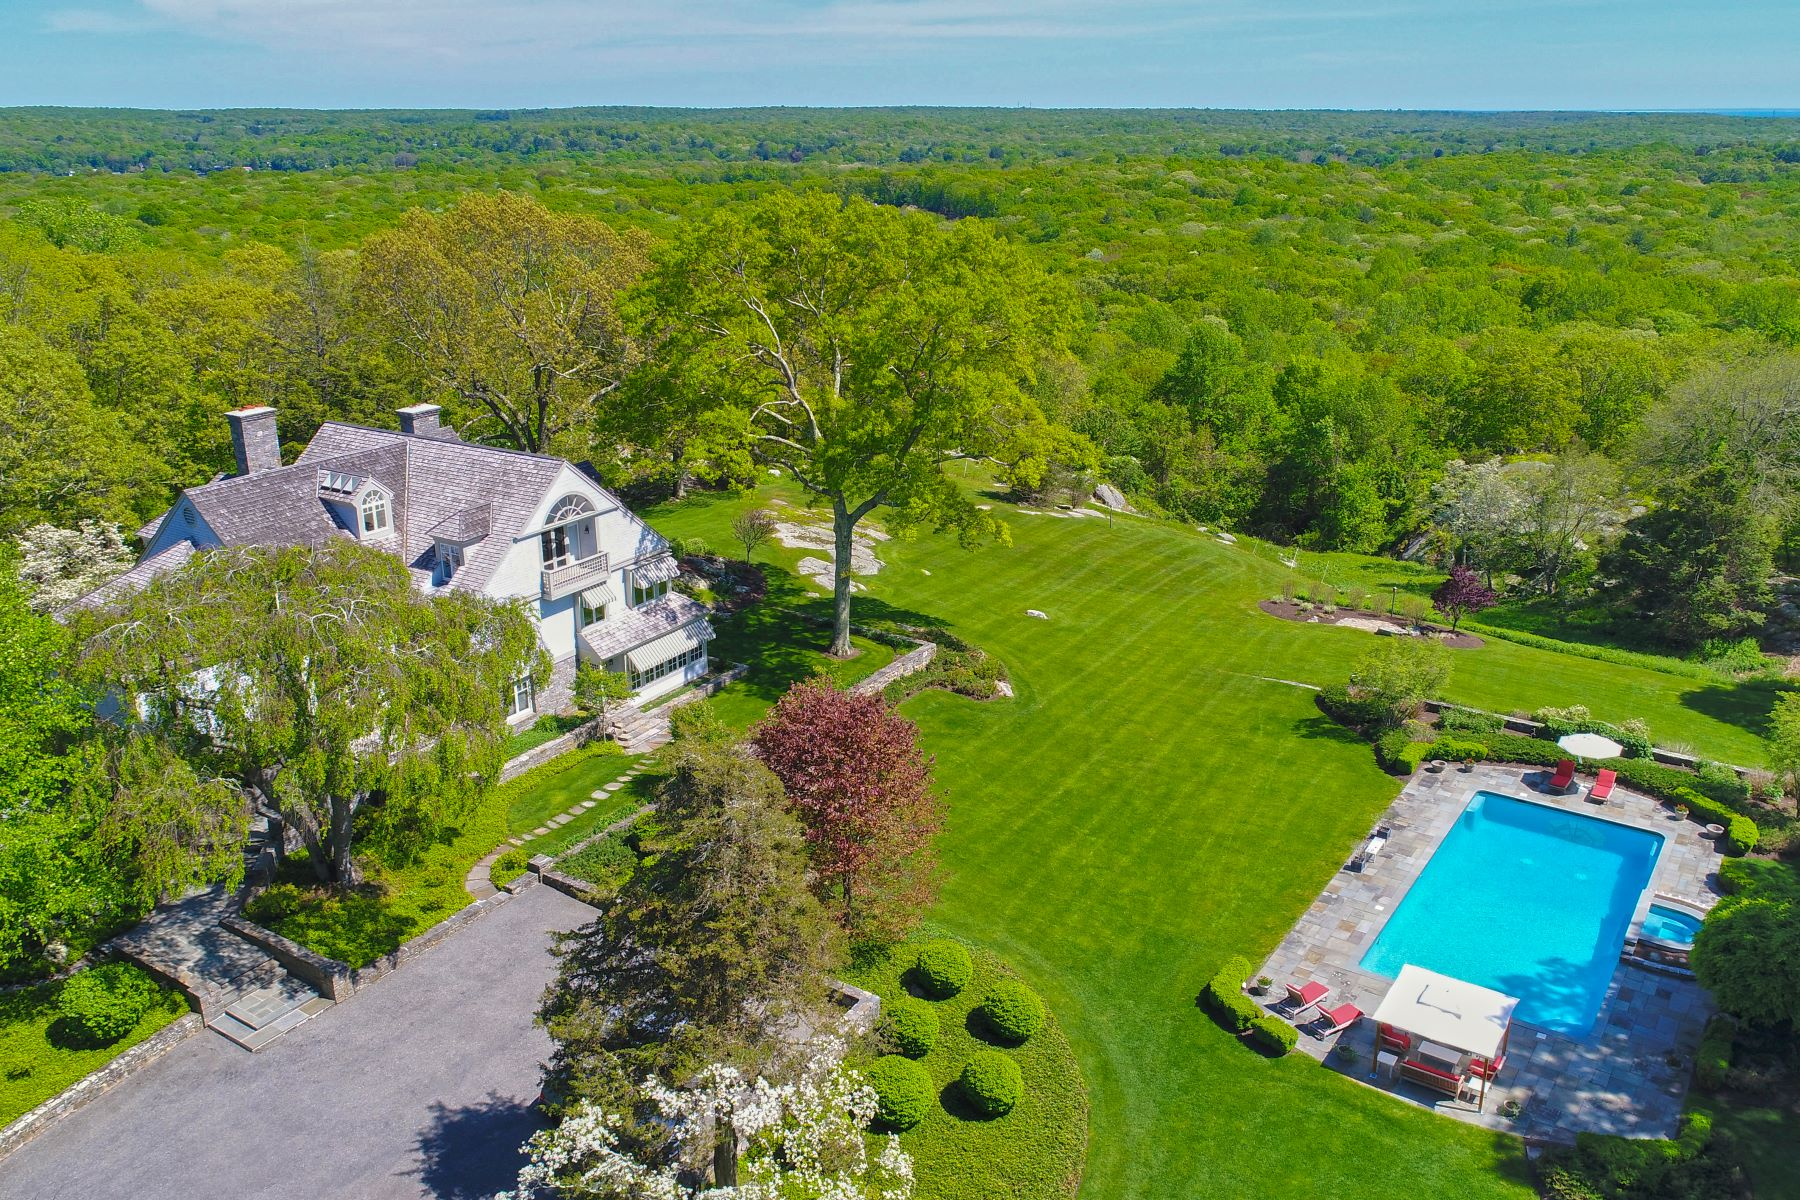 Single Family Home for Sale at Pristine Gated Estate 102 Town Woods Road Old Lyme, Connecticut 06371 United States